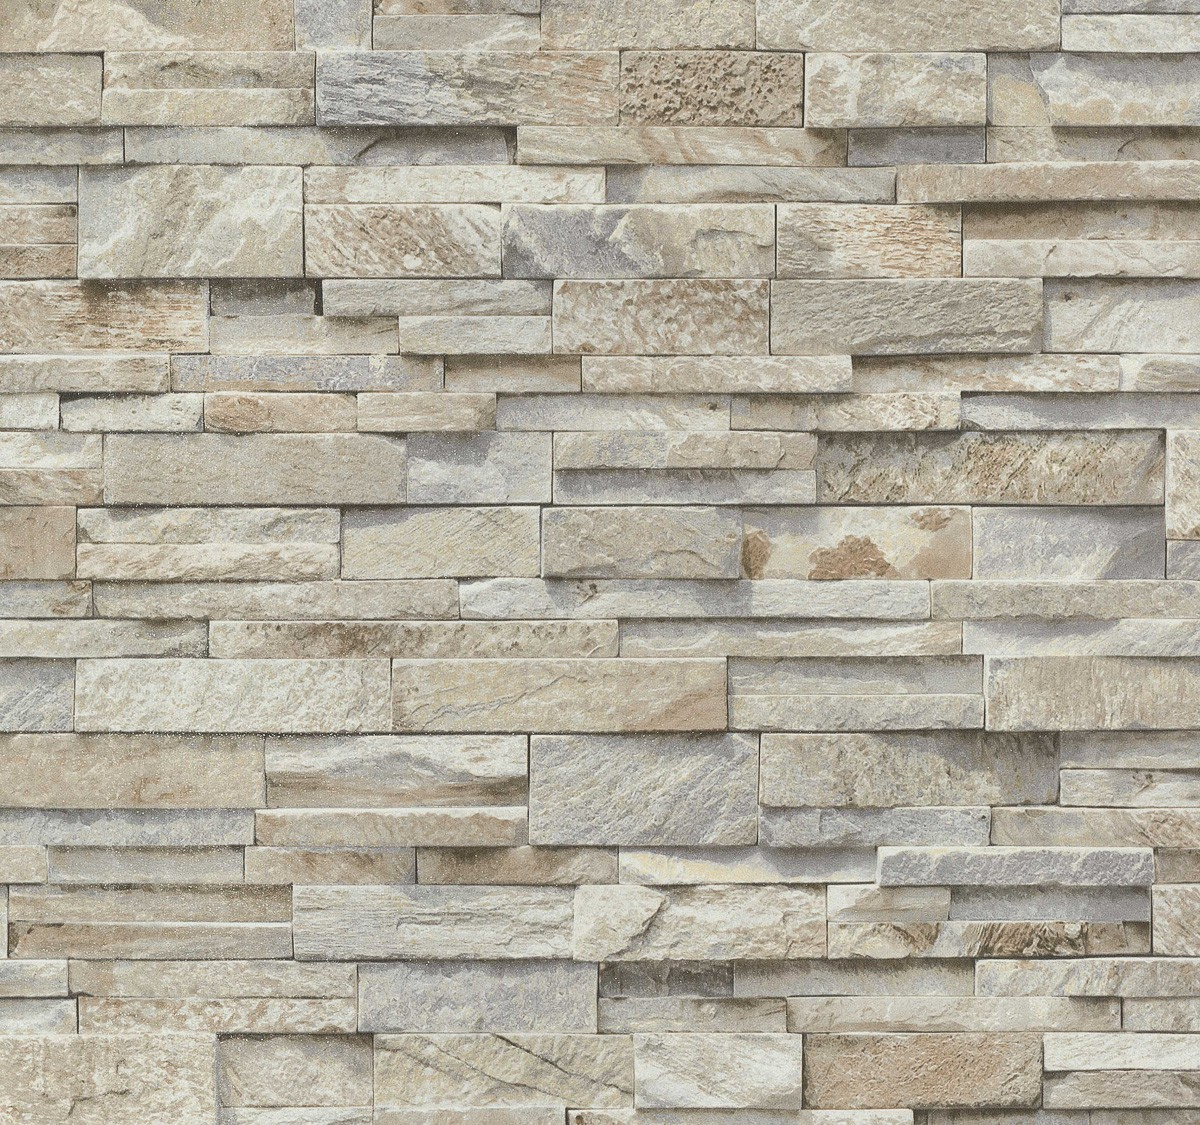 Wallpaper Stone Stones Wall Brick Beige Grey PS 02363 10 001